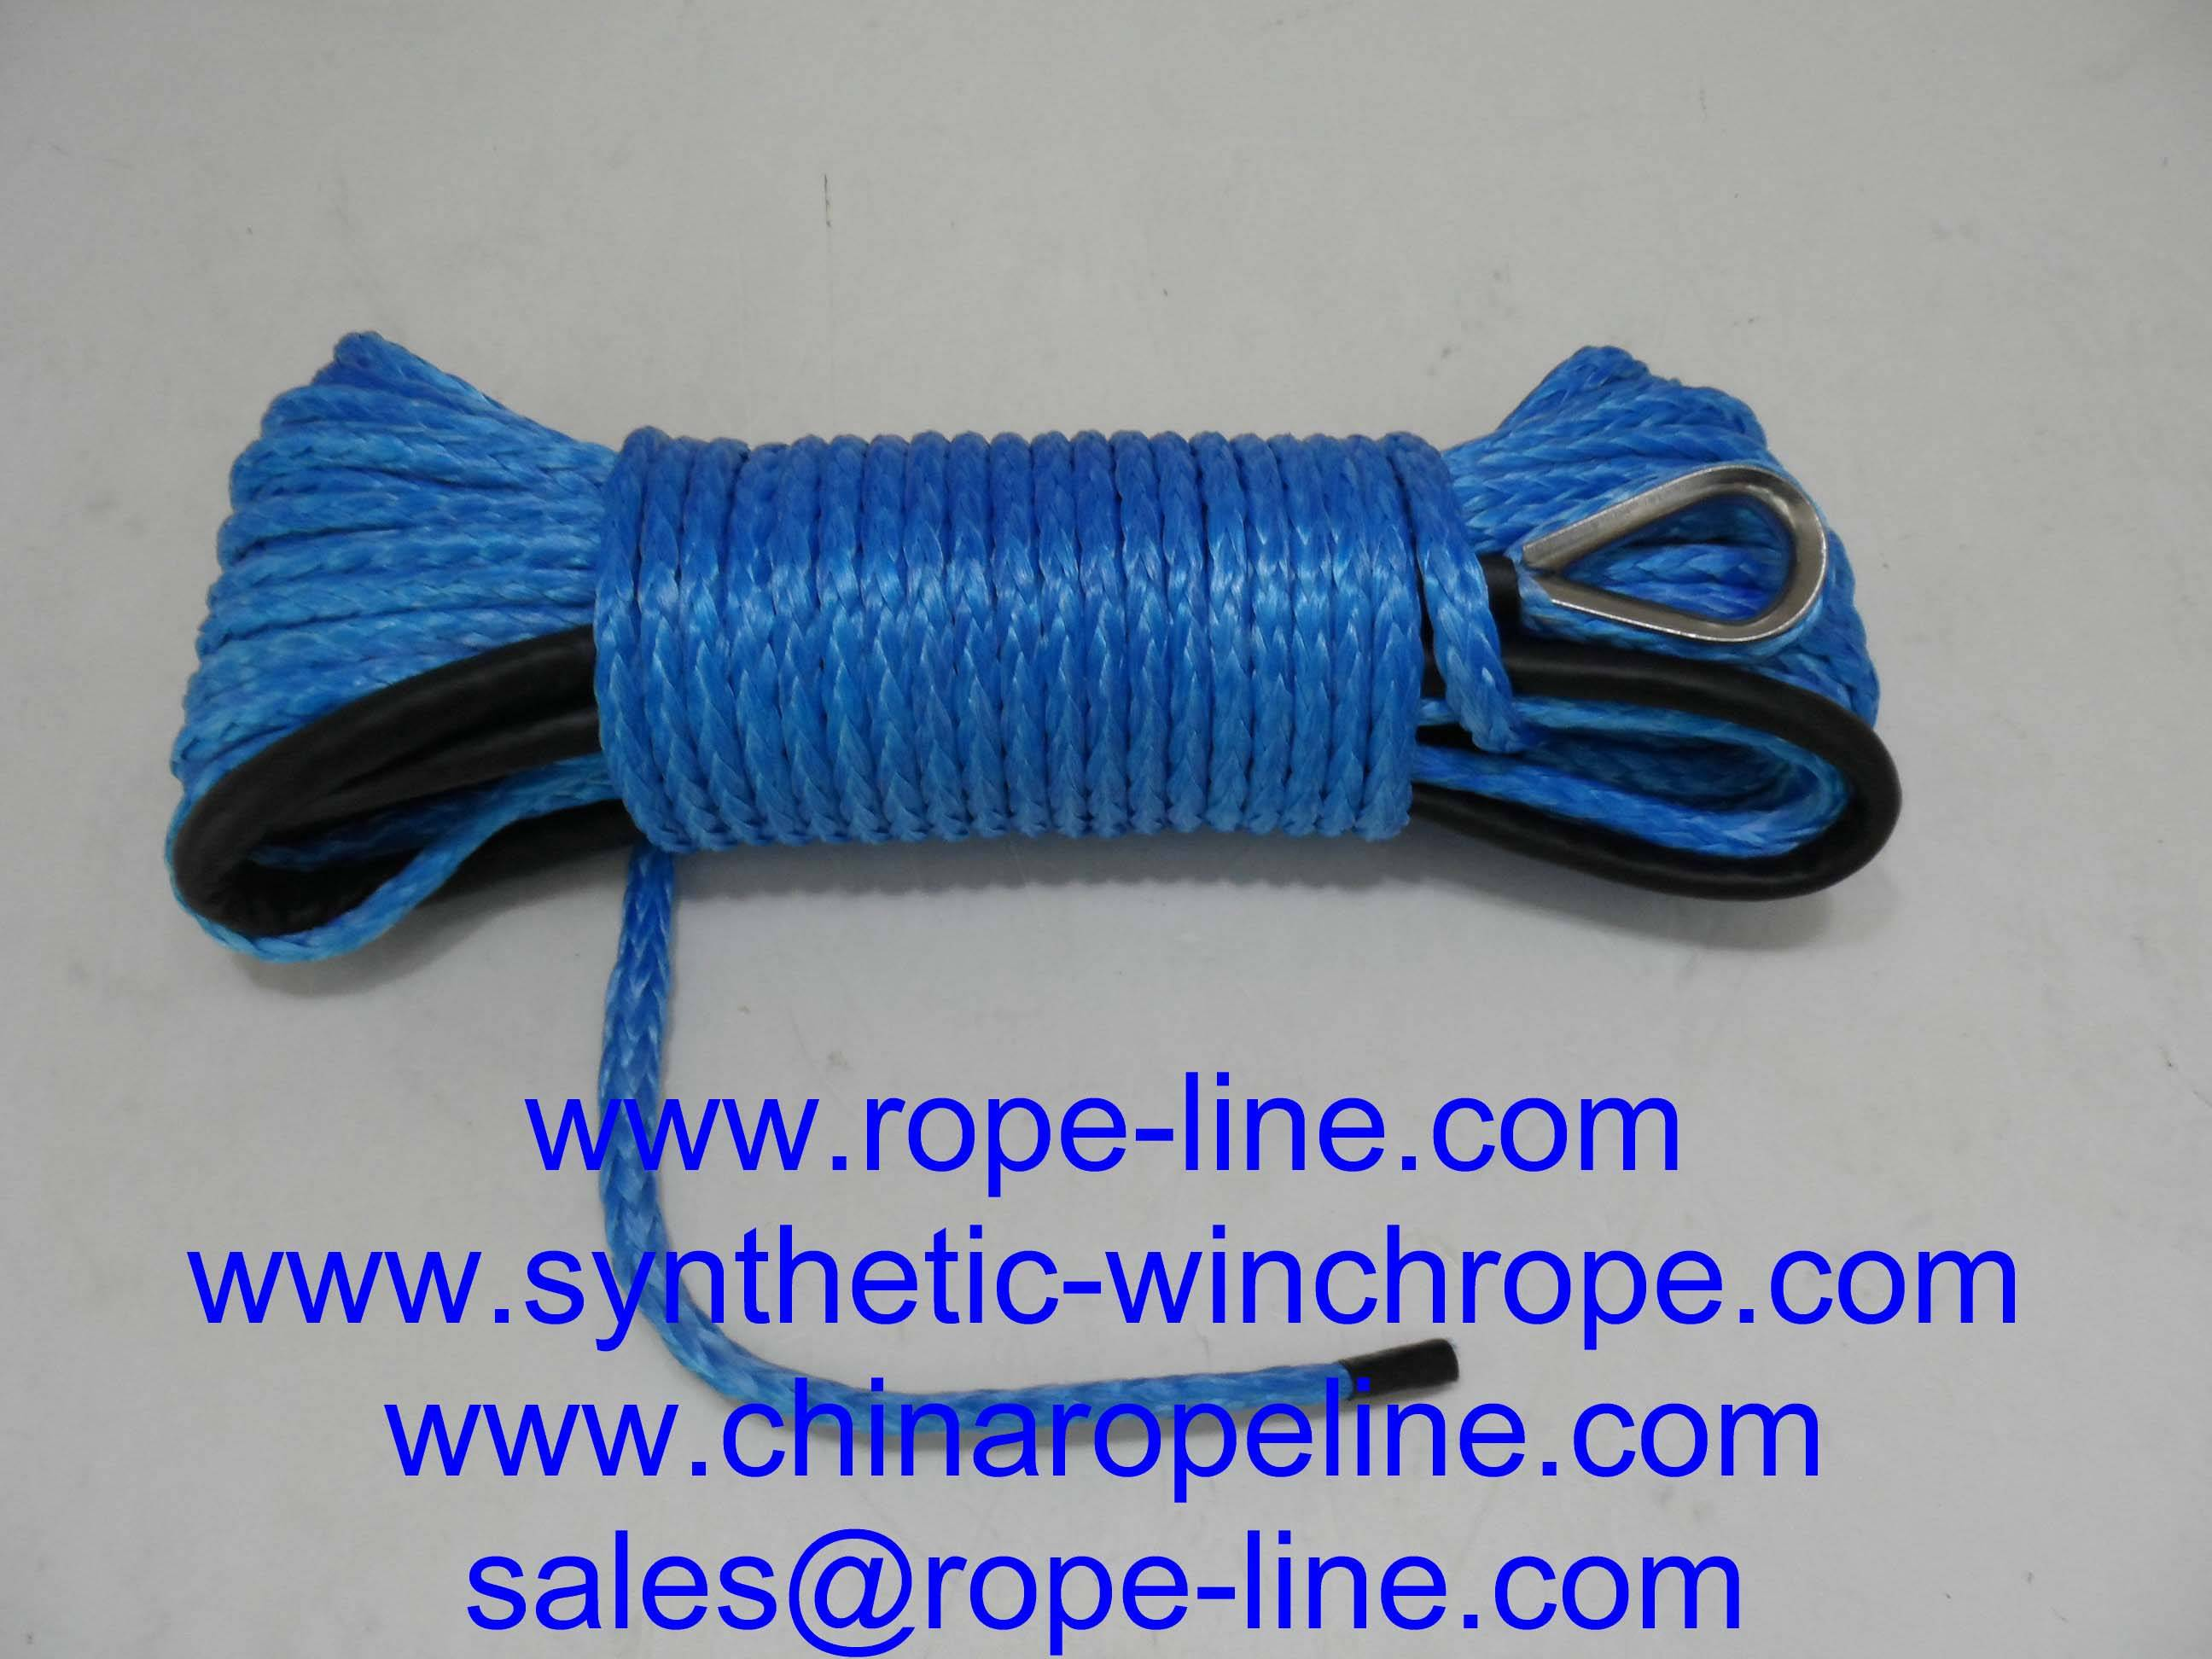 synthetic winch rope for ATV